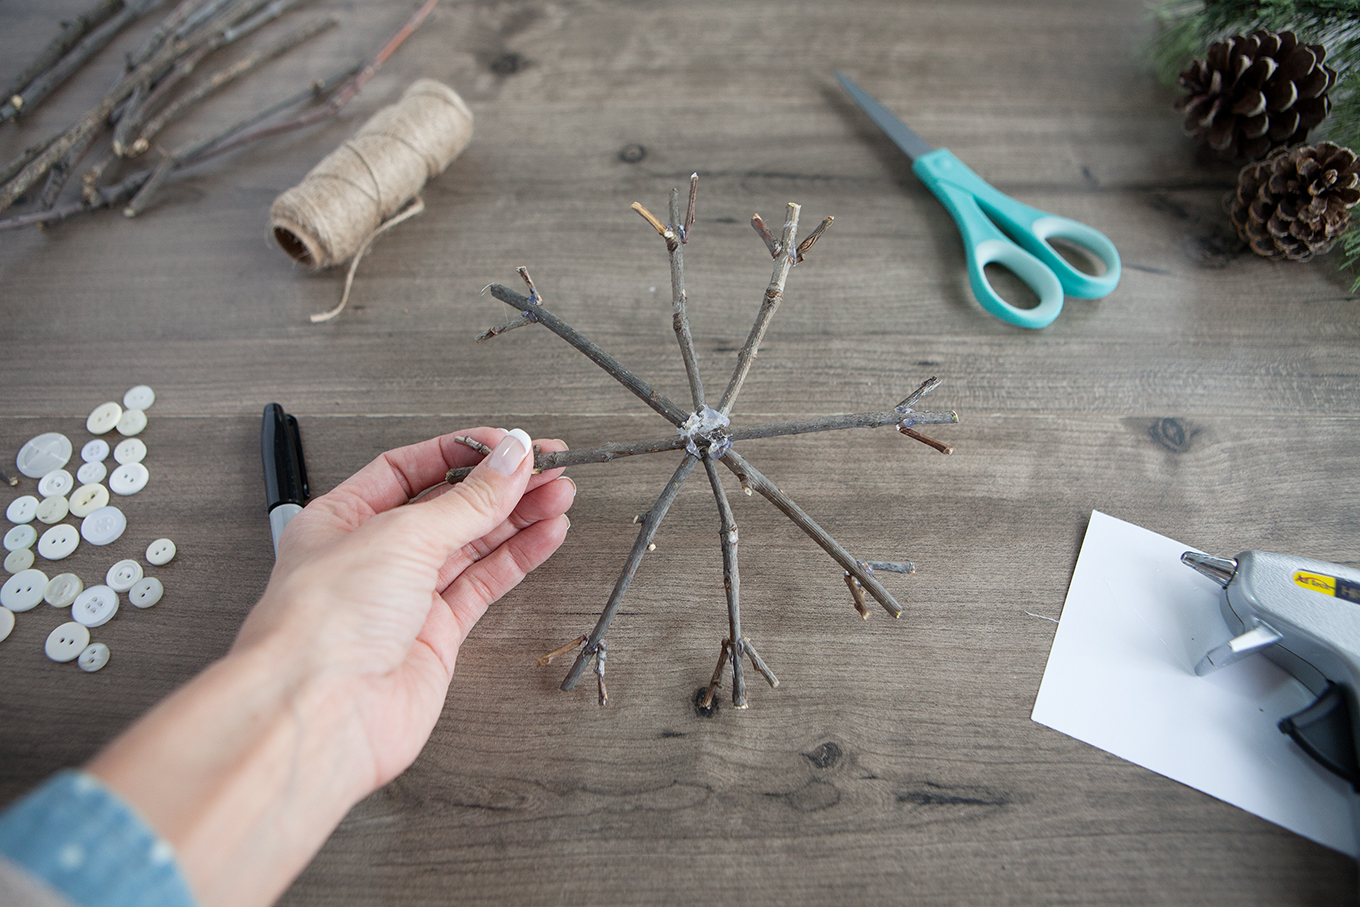 Bring a touch of nature indoors this year as you decorate your tree – learn how to make rustic twig Christmas ornaments! They're simple, insanely inexpensive and look beautiful!